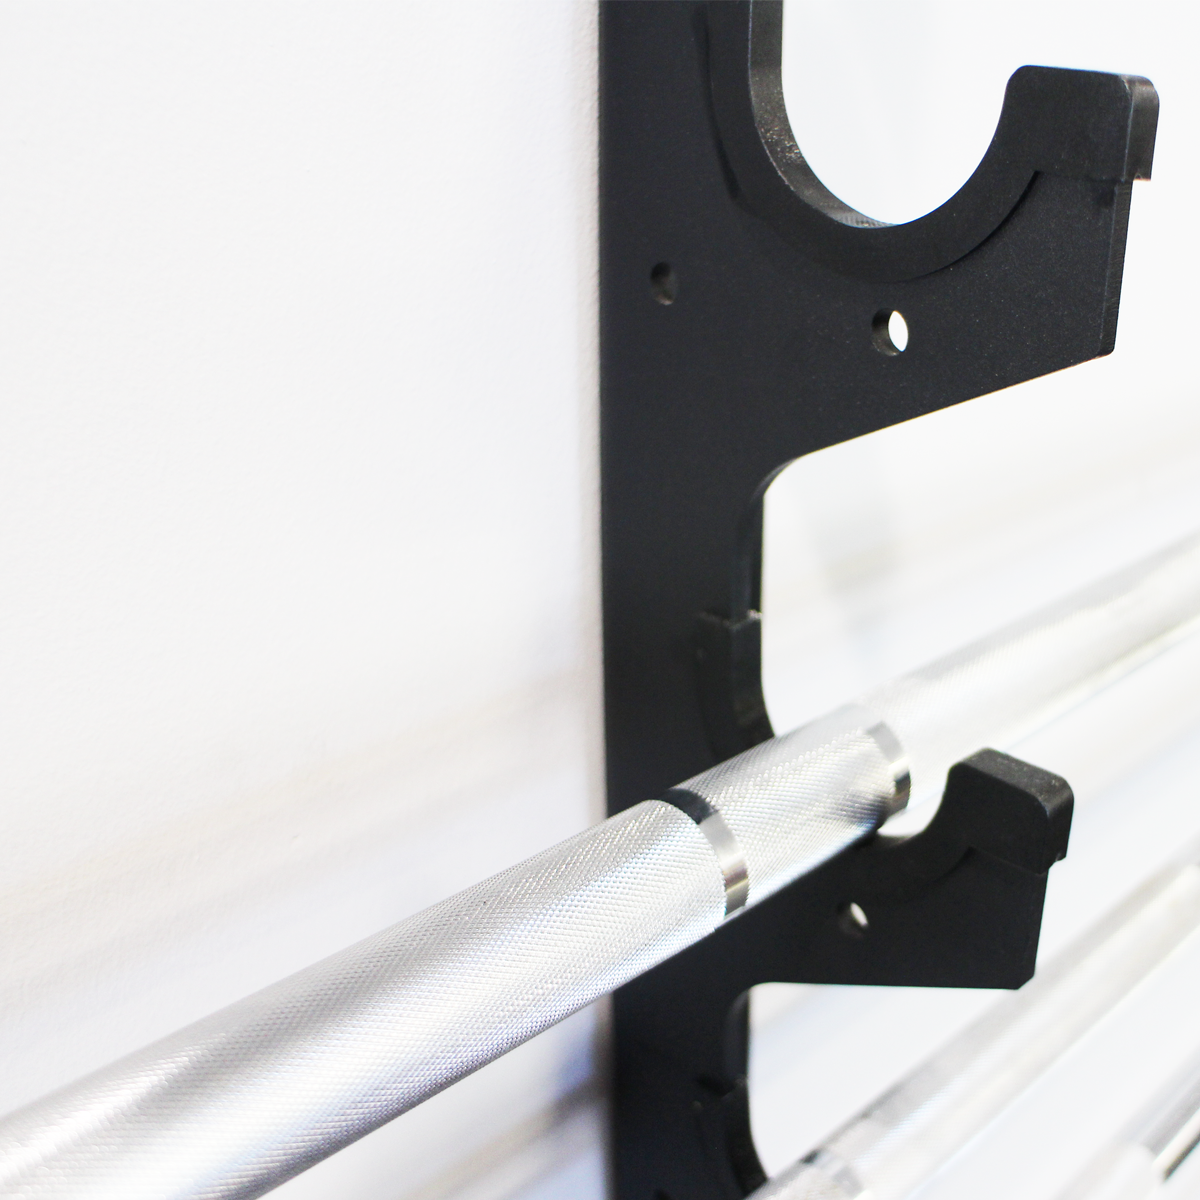 Gun Rack - 6 Barbell Horizontal Wall Mount - Out of Stock